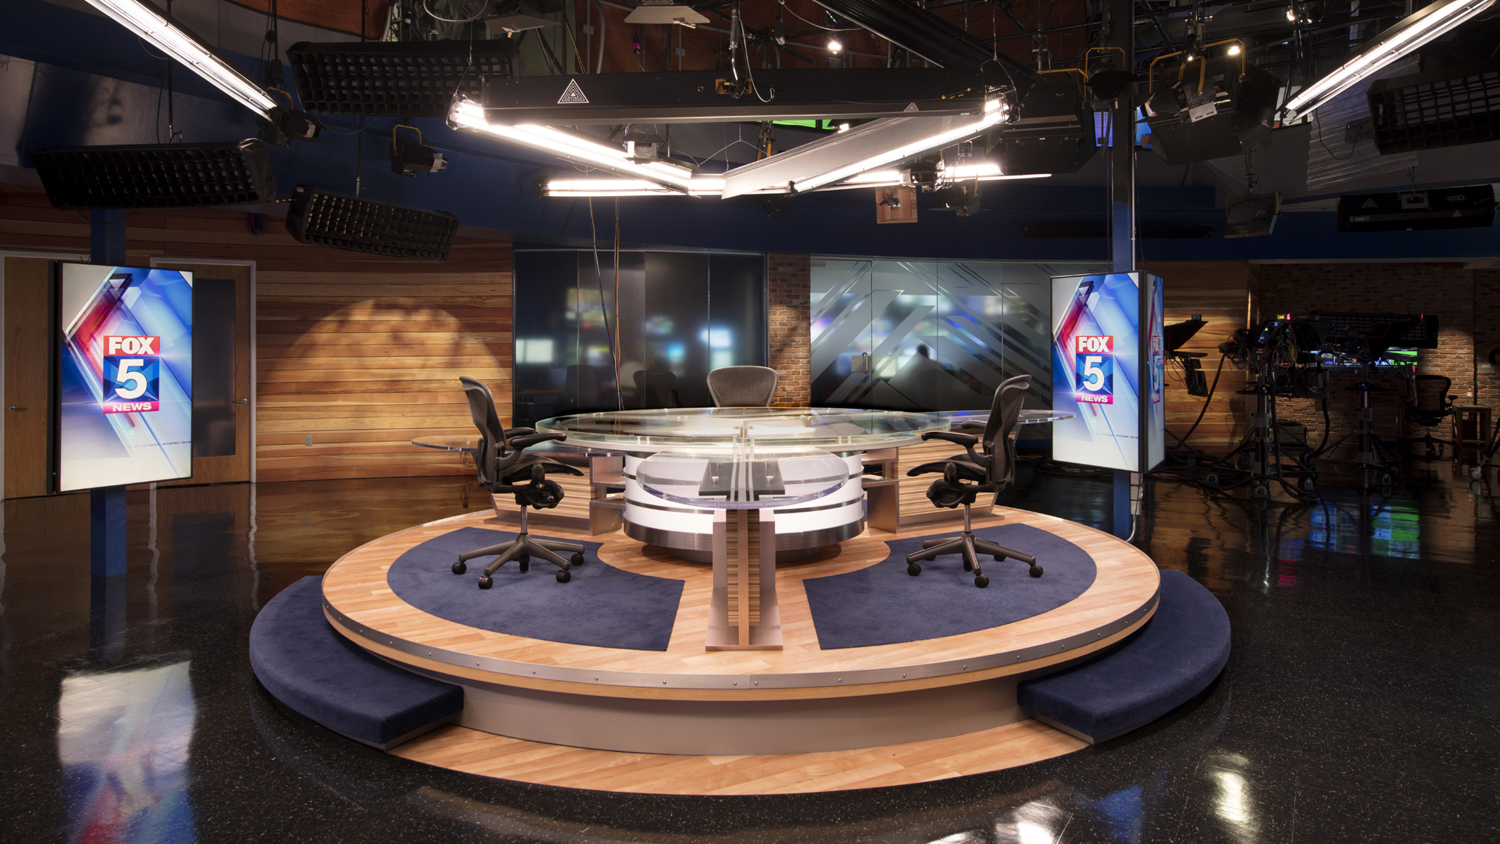 NCS_KSWB-Fox-5-San-Diego-TV-Studio_0007